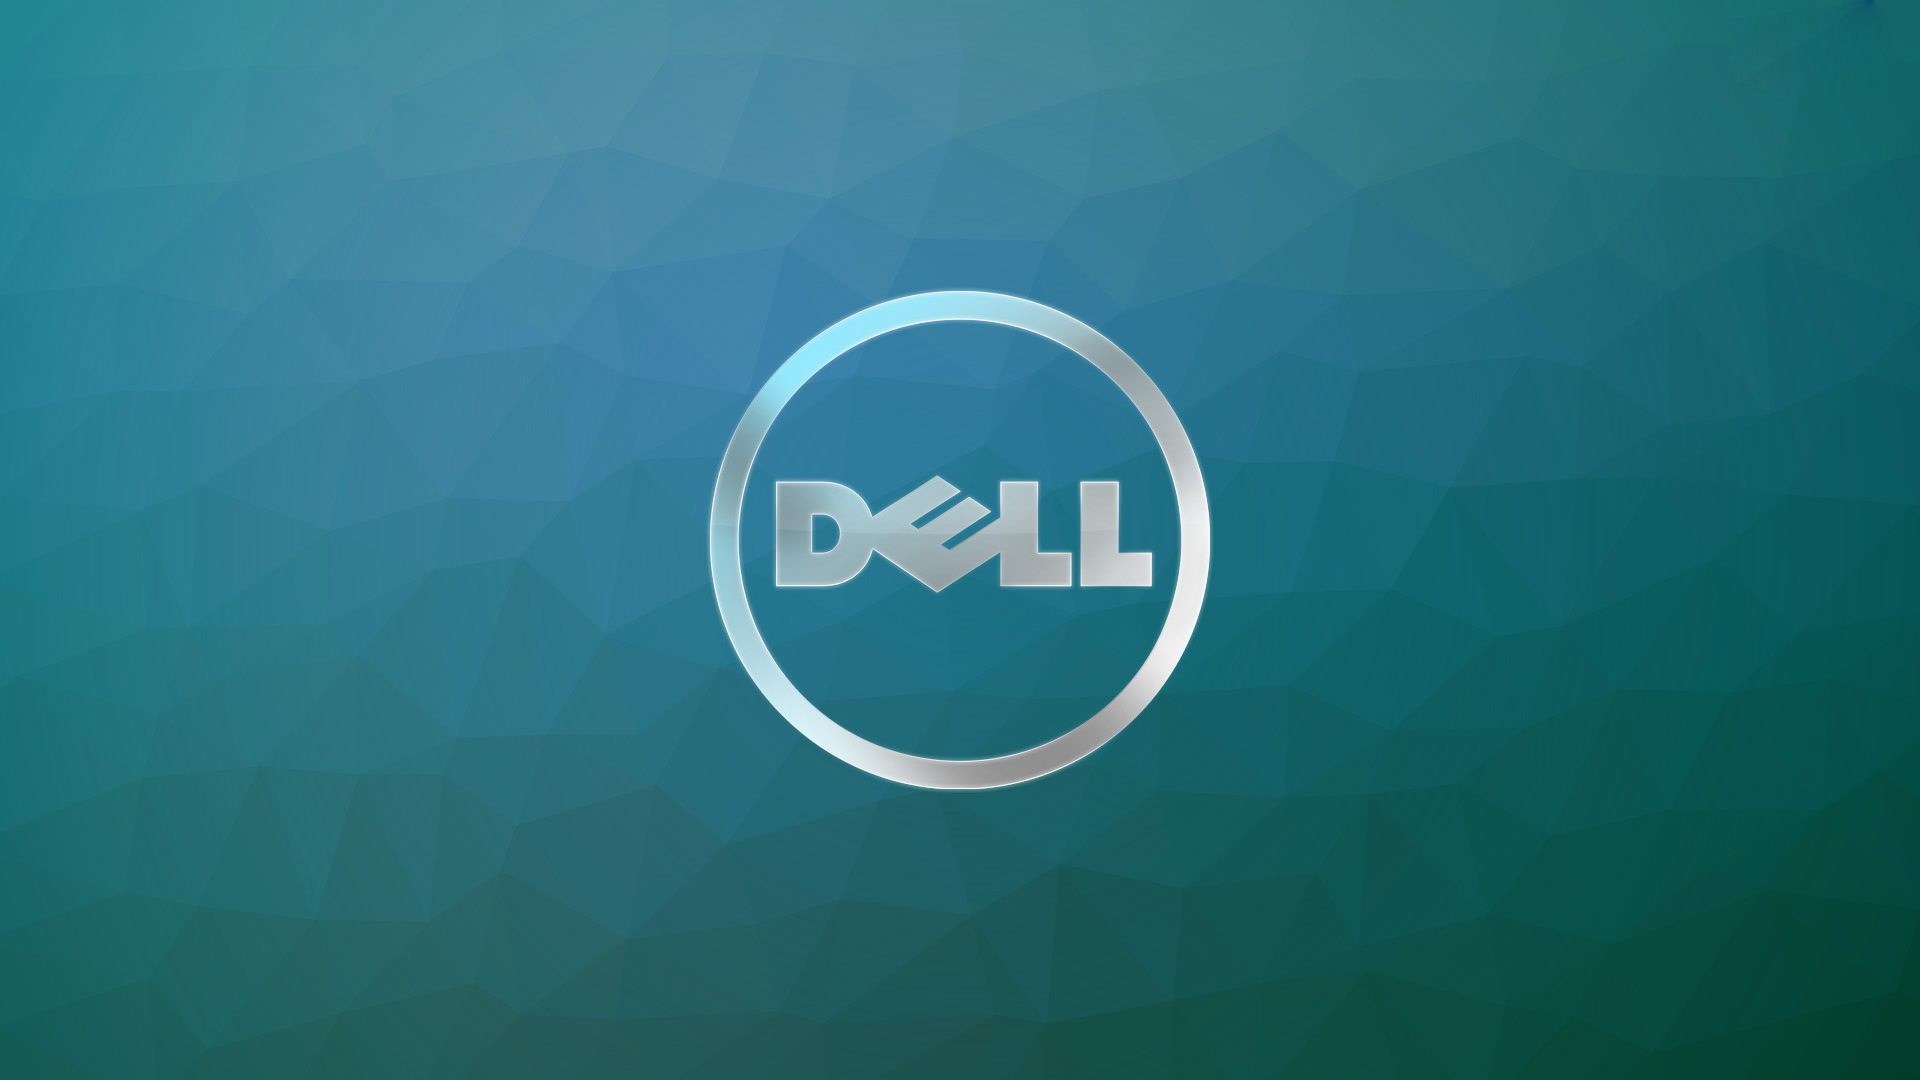 dell background image